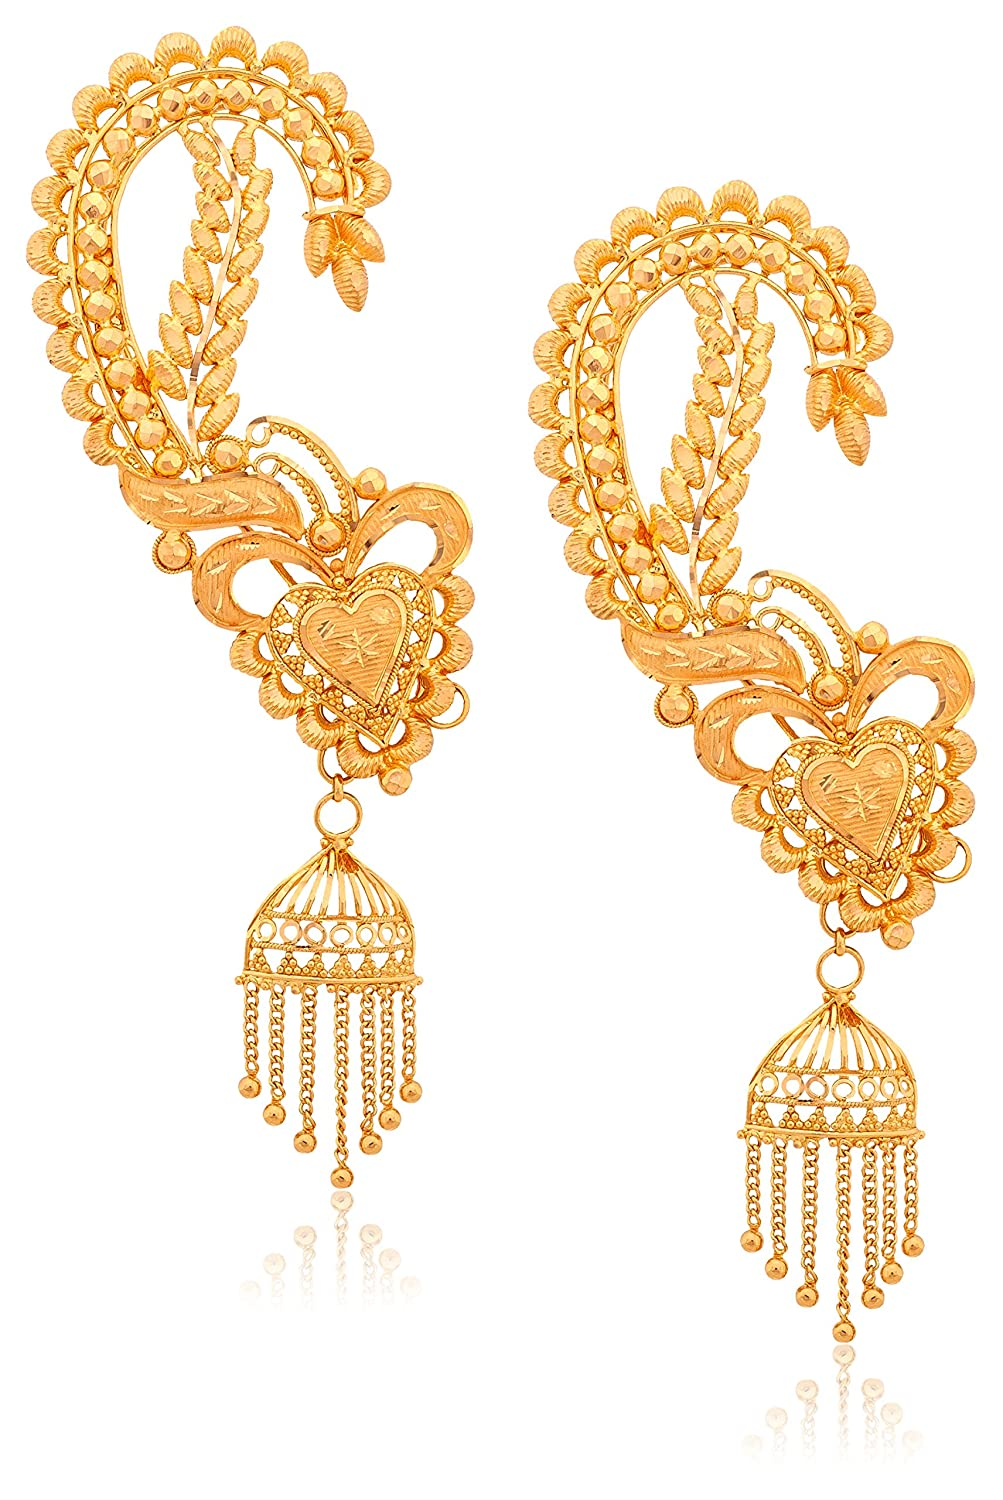 Delighted Senco Gold Earring Price Gallery - Jewelry Collection ...